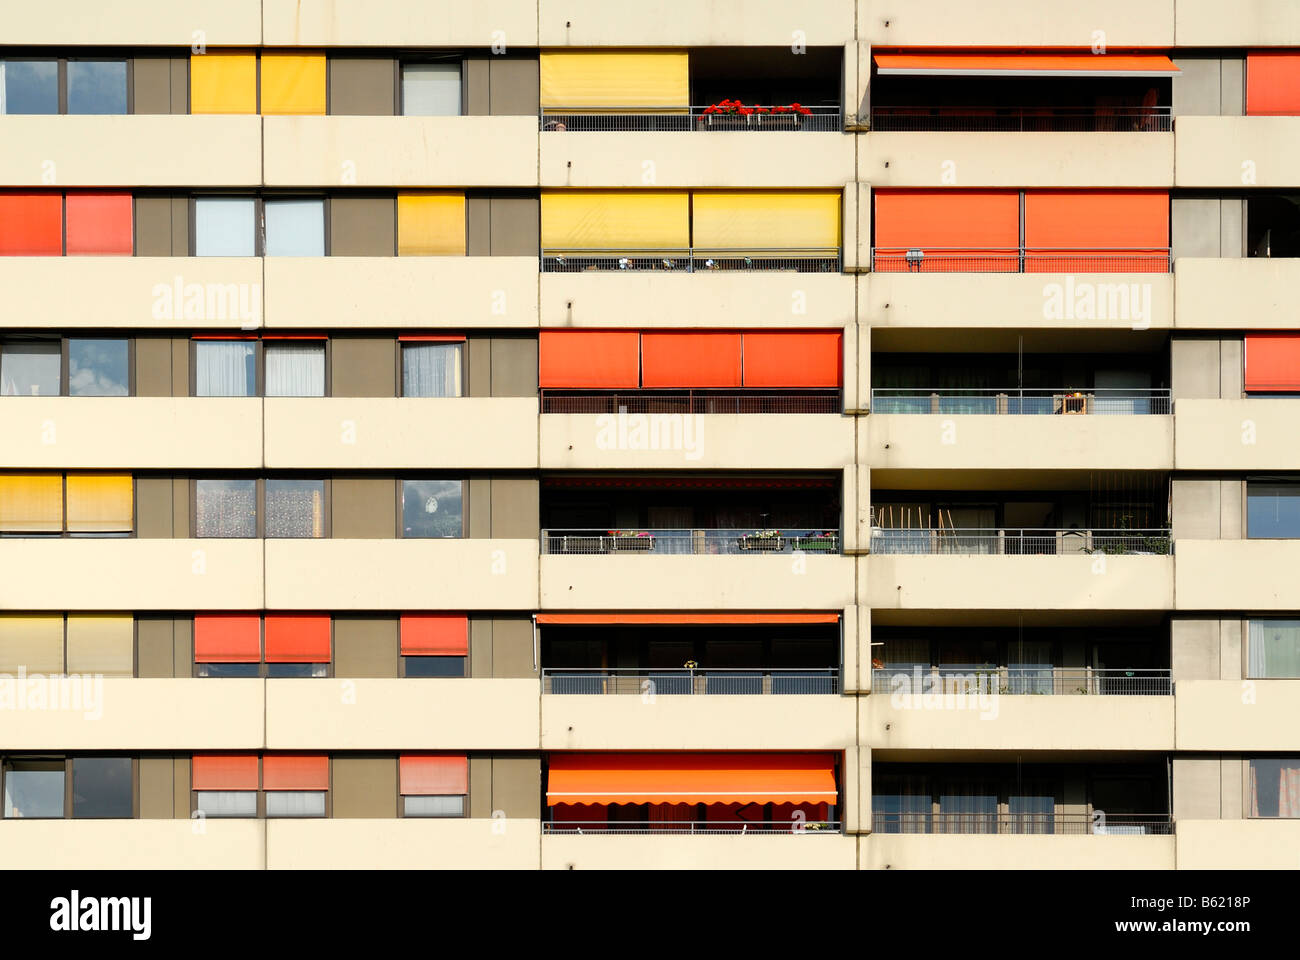 Facade of a multistory building - Stock Image